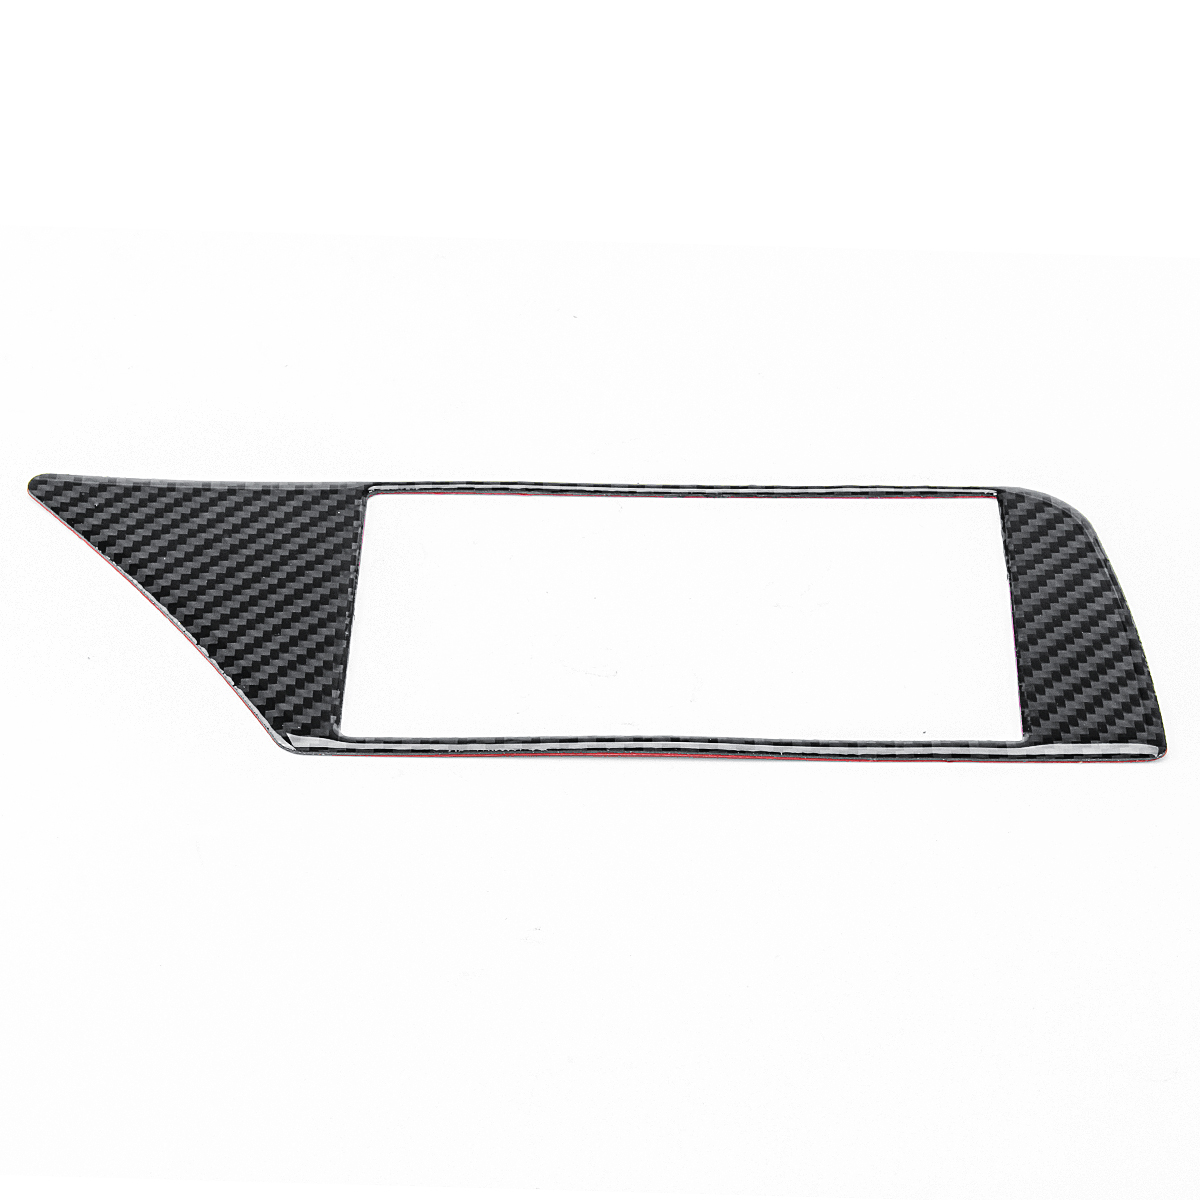 Carbon Fiber Gps Navigation Panel Frame Cover Car Stickers For Audi A4 B8